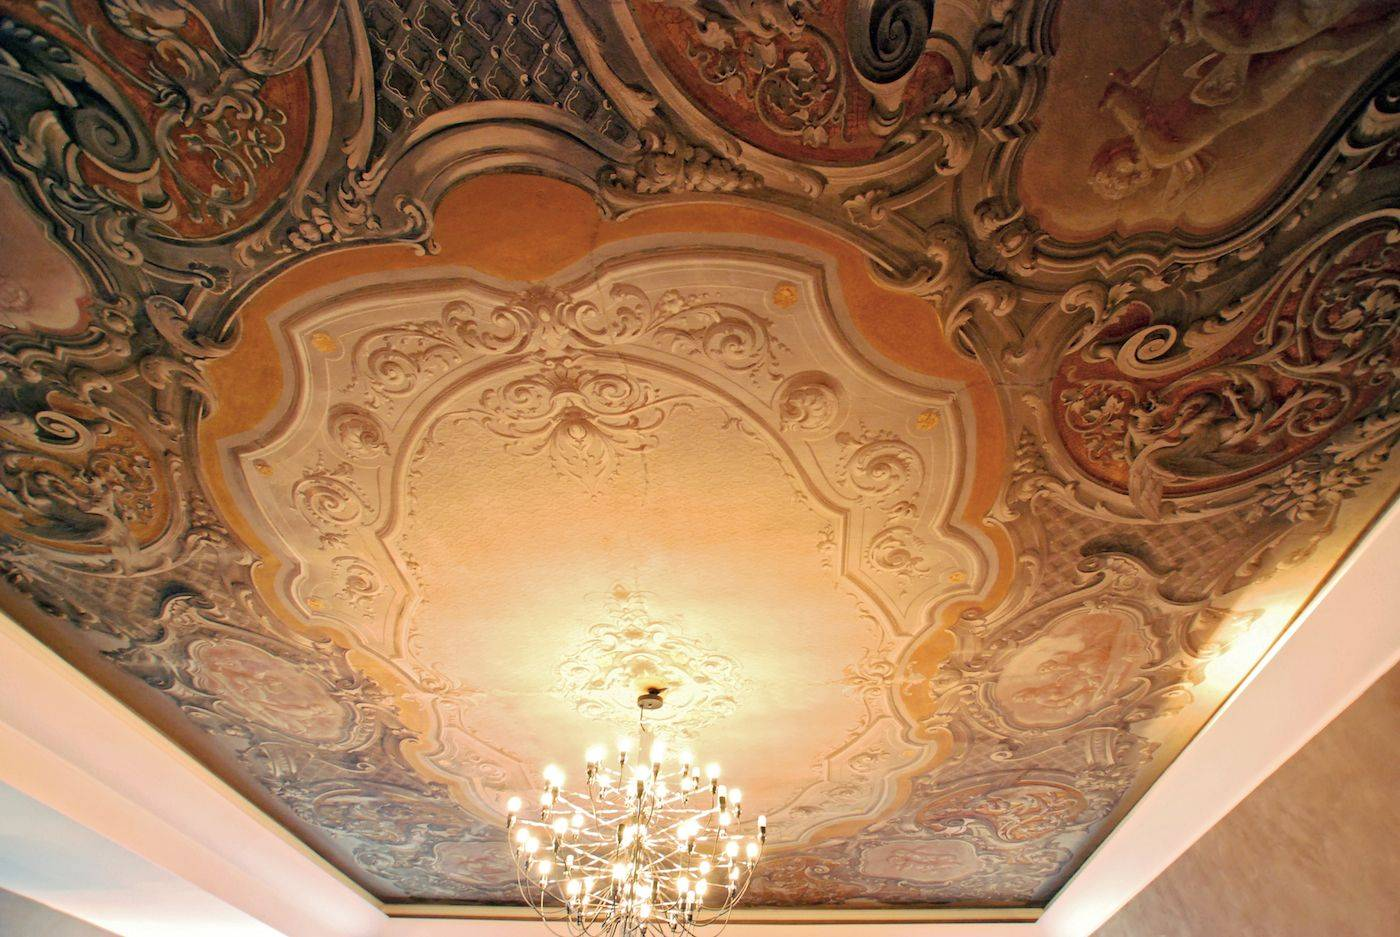 ancient frescoes of the living room ceiling